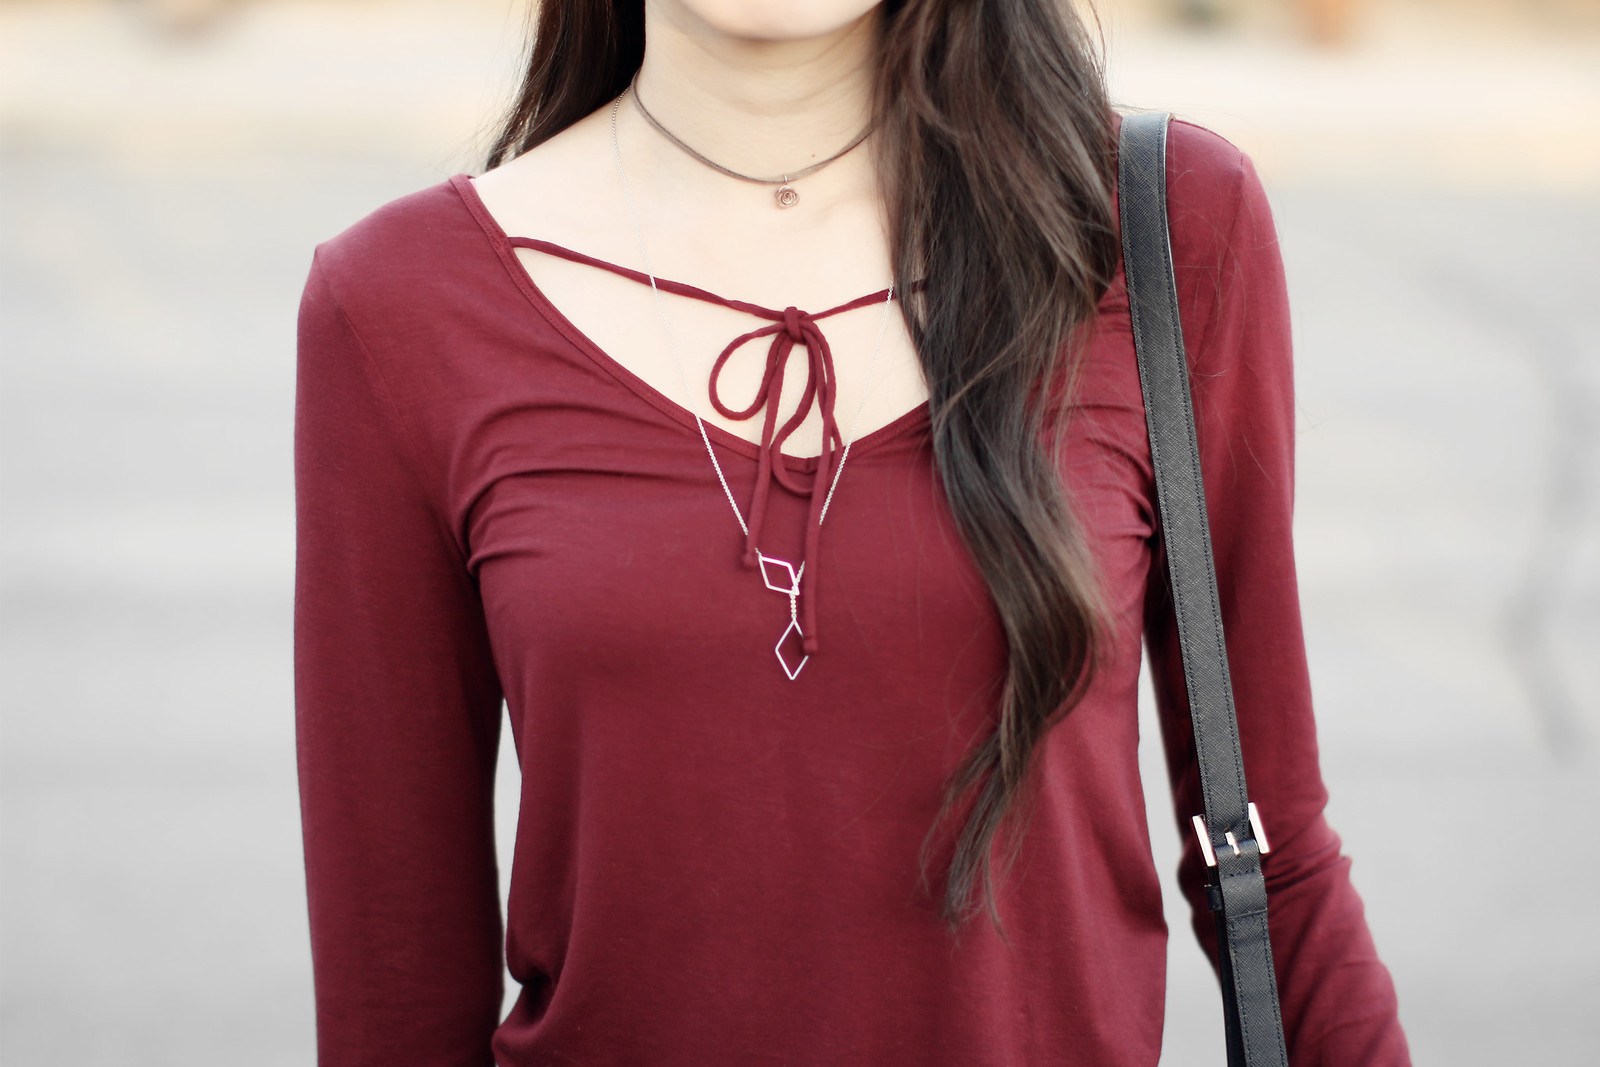 1122-fall-ootd-fashion-style-hollister-red-bowtie-autumn2016